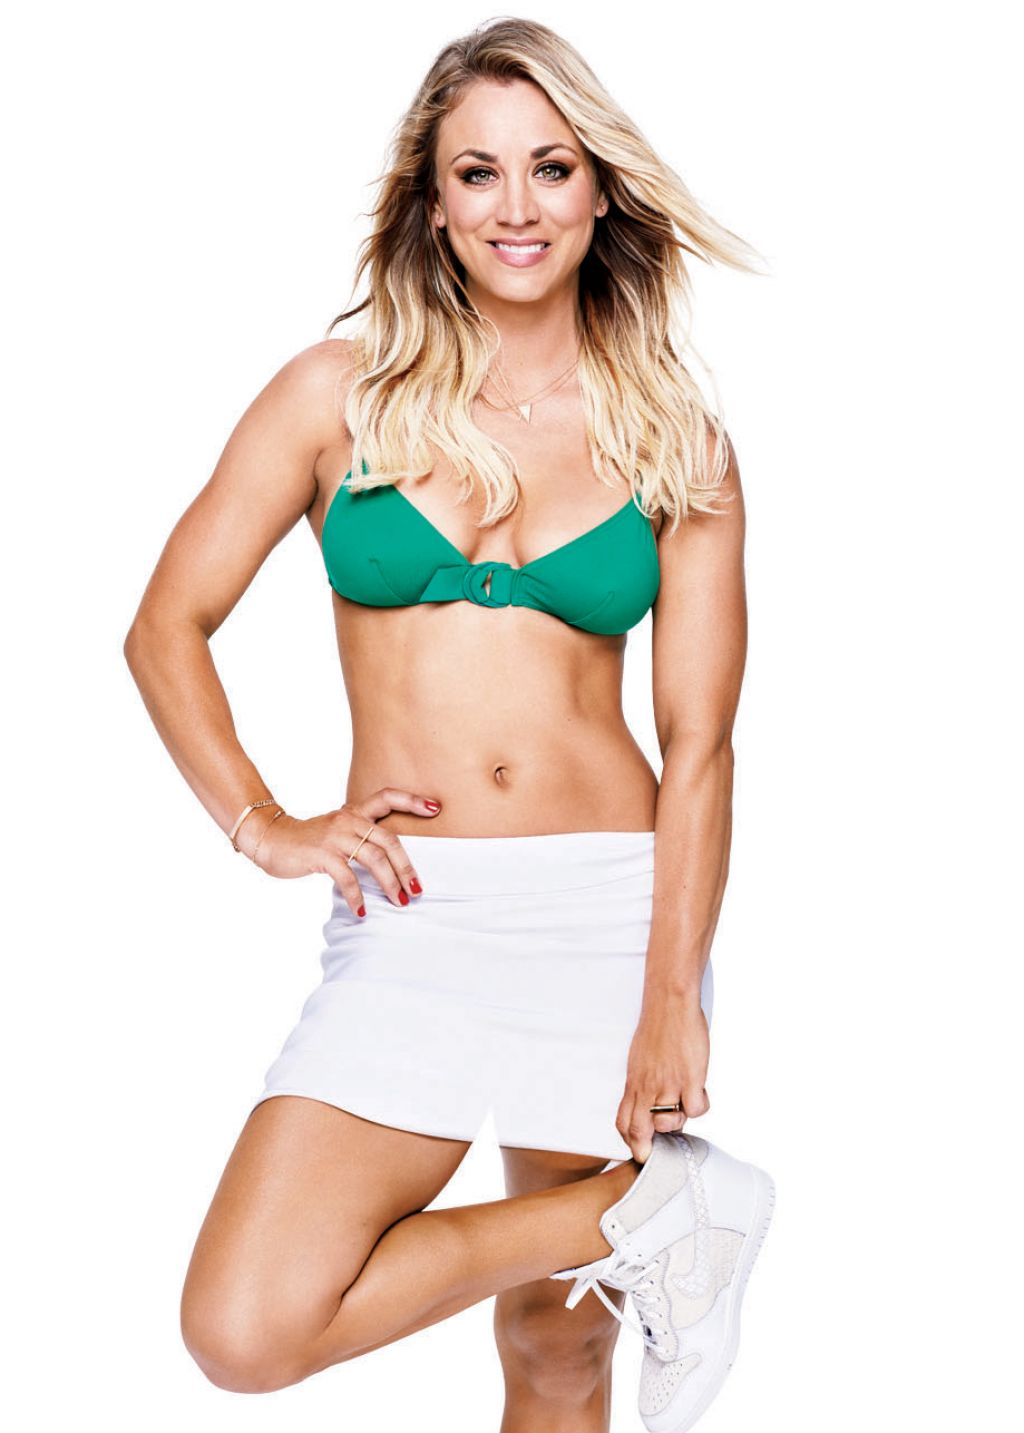 Kaley Cuoco in Women's Health Magazine